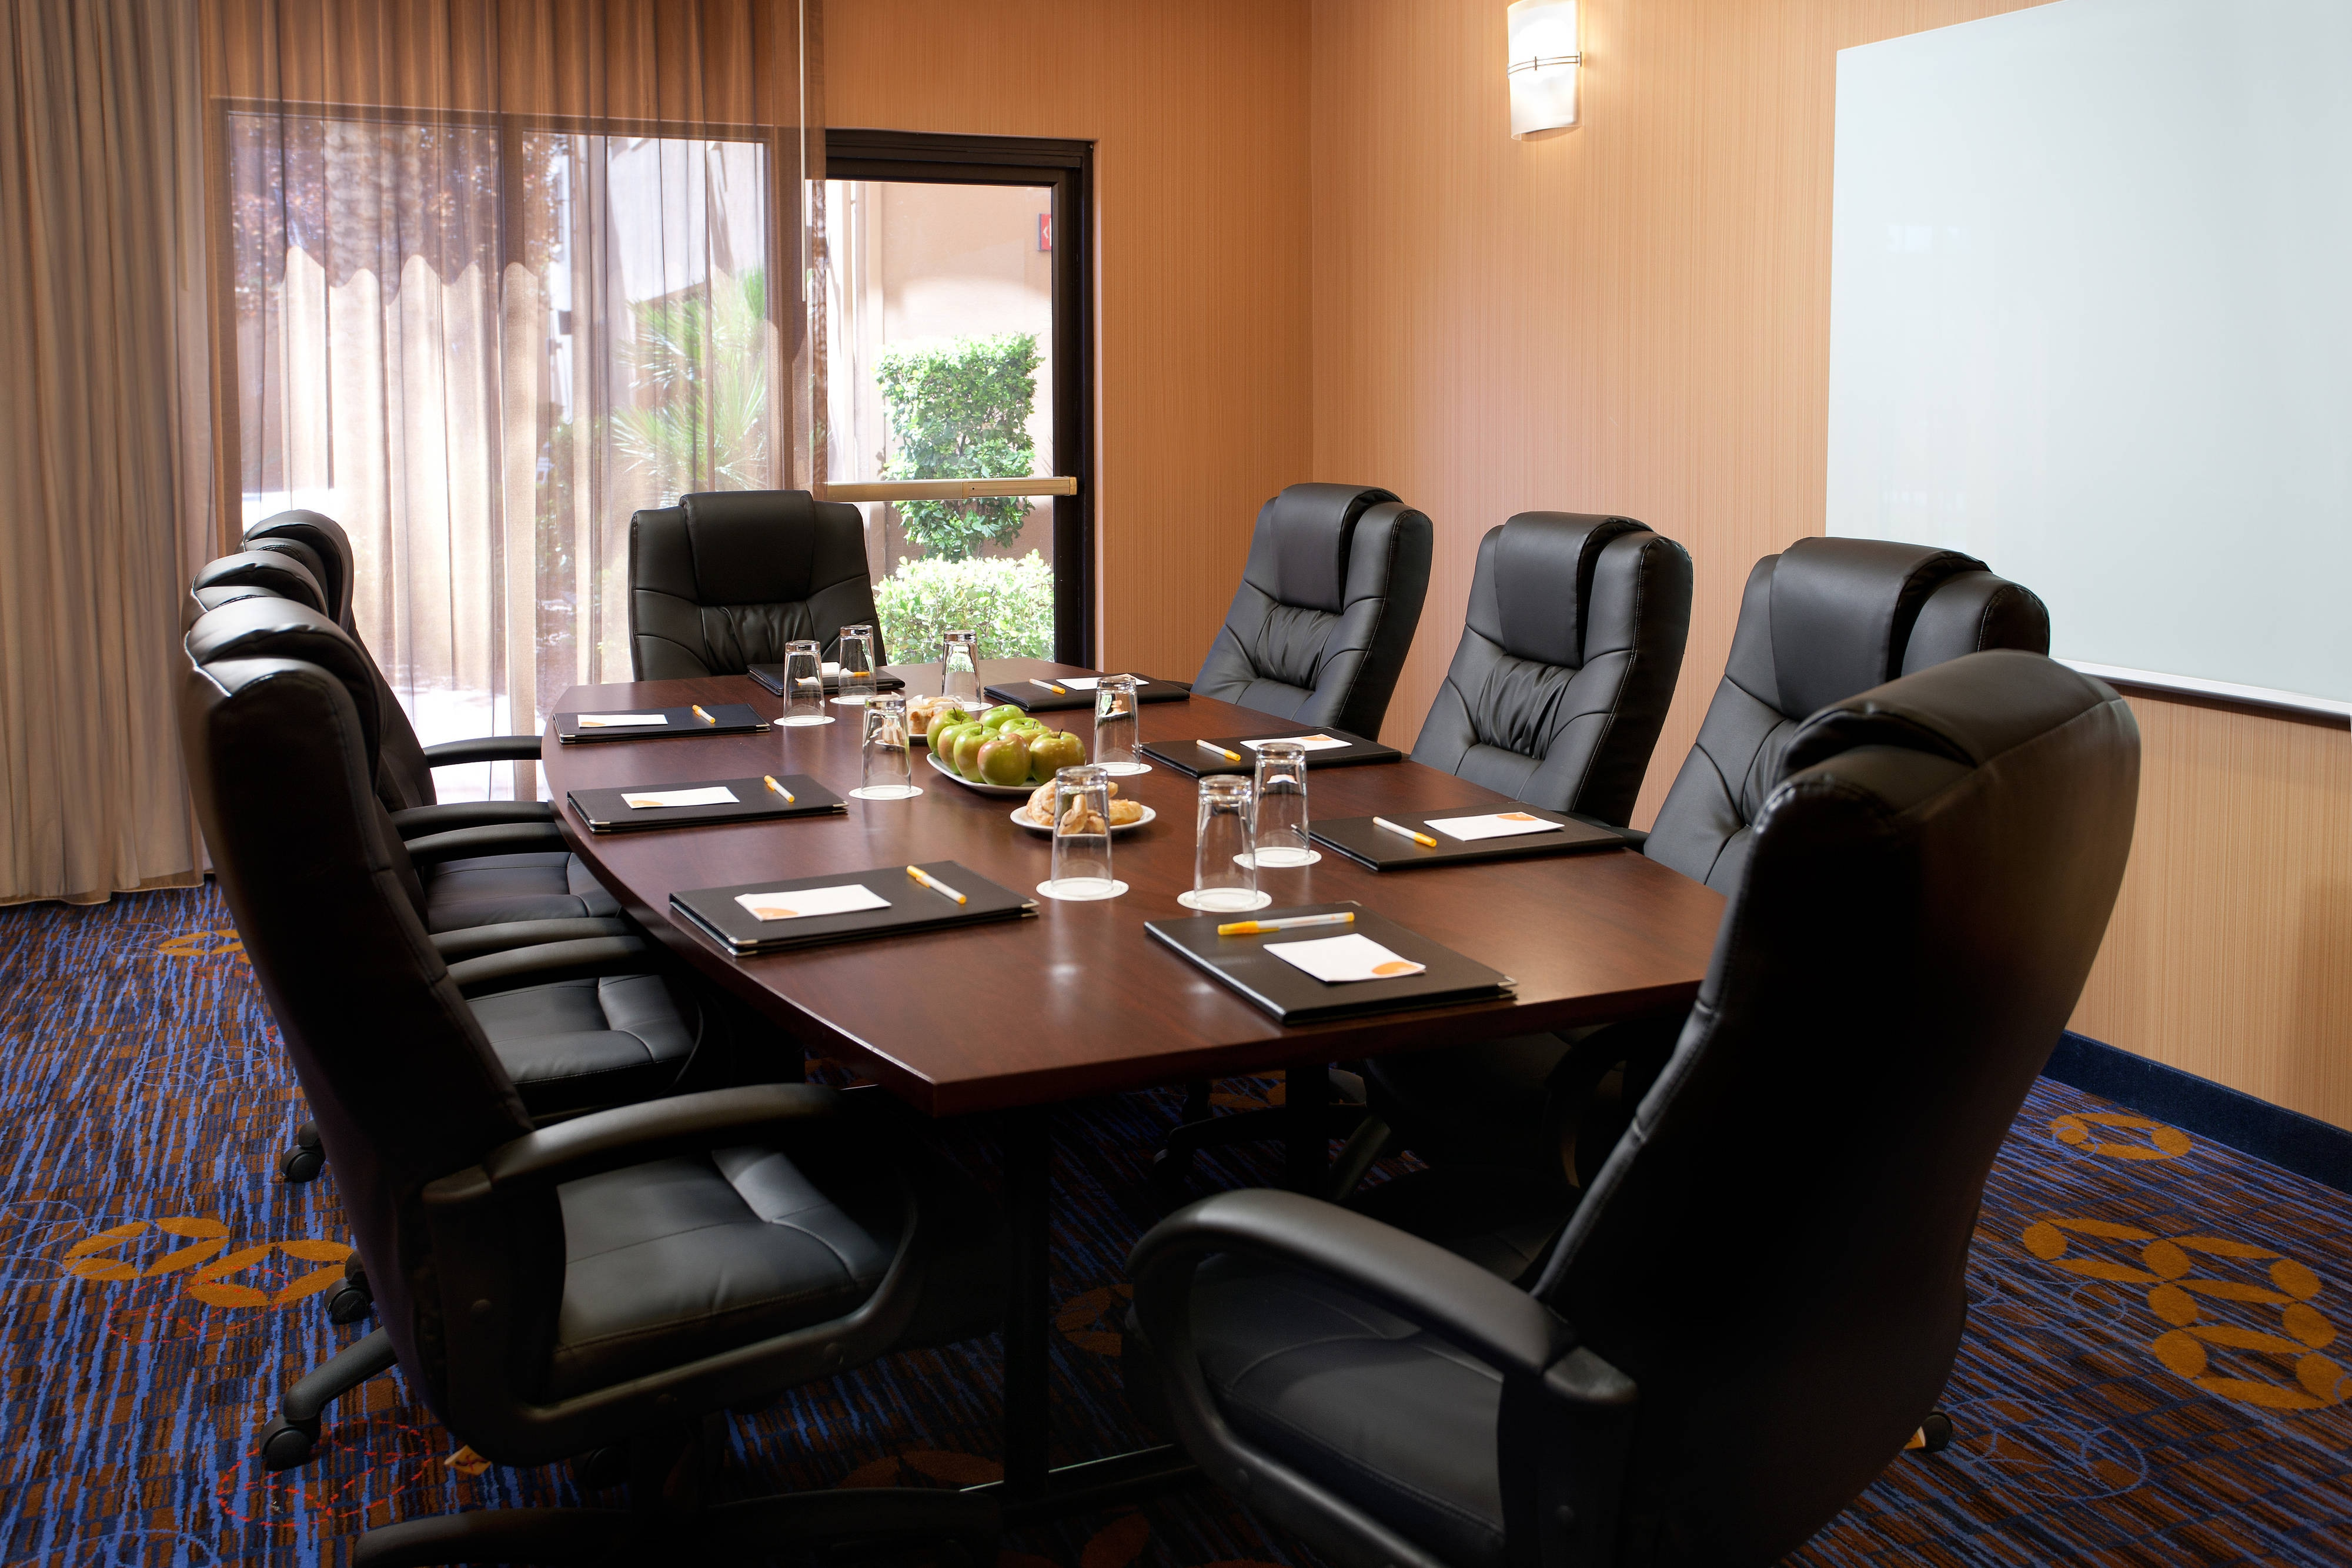 Las Vegas Summerlin boardroom